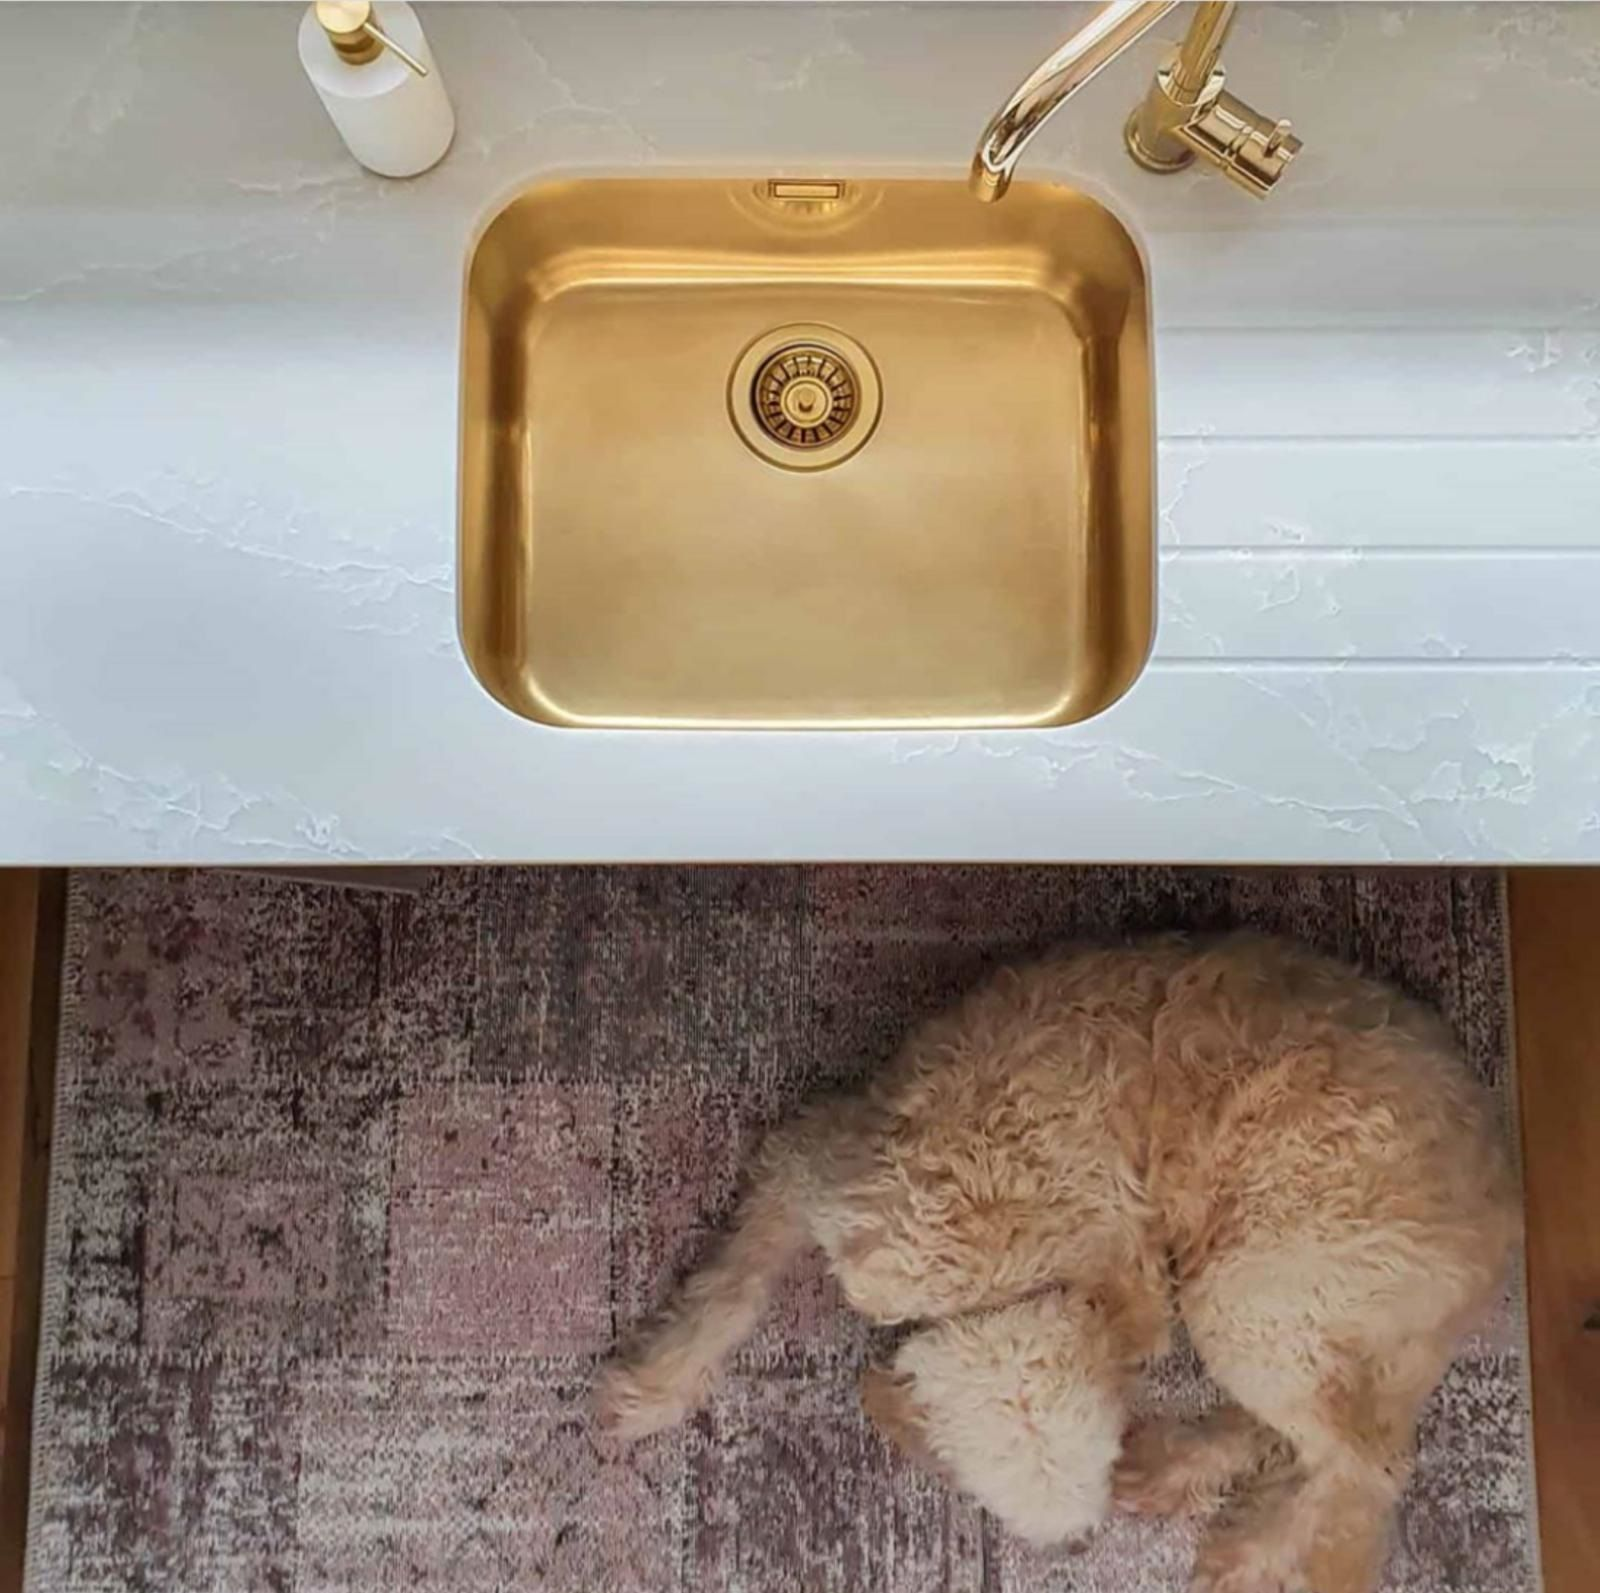 Gold undermount sink in 2020 Sink, Malm, Ikea malm drawers